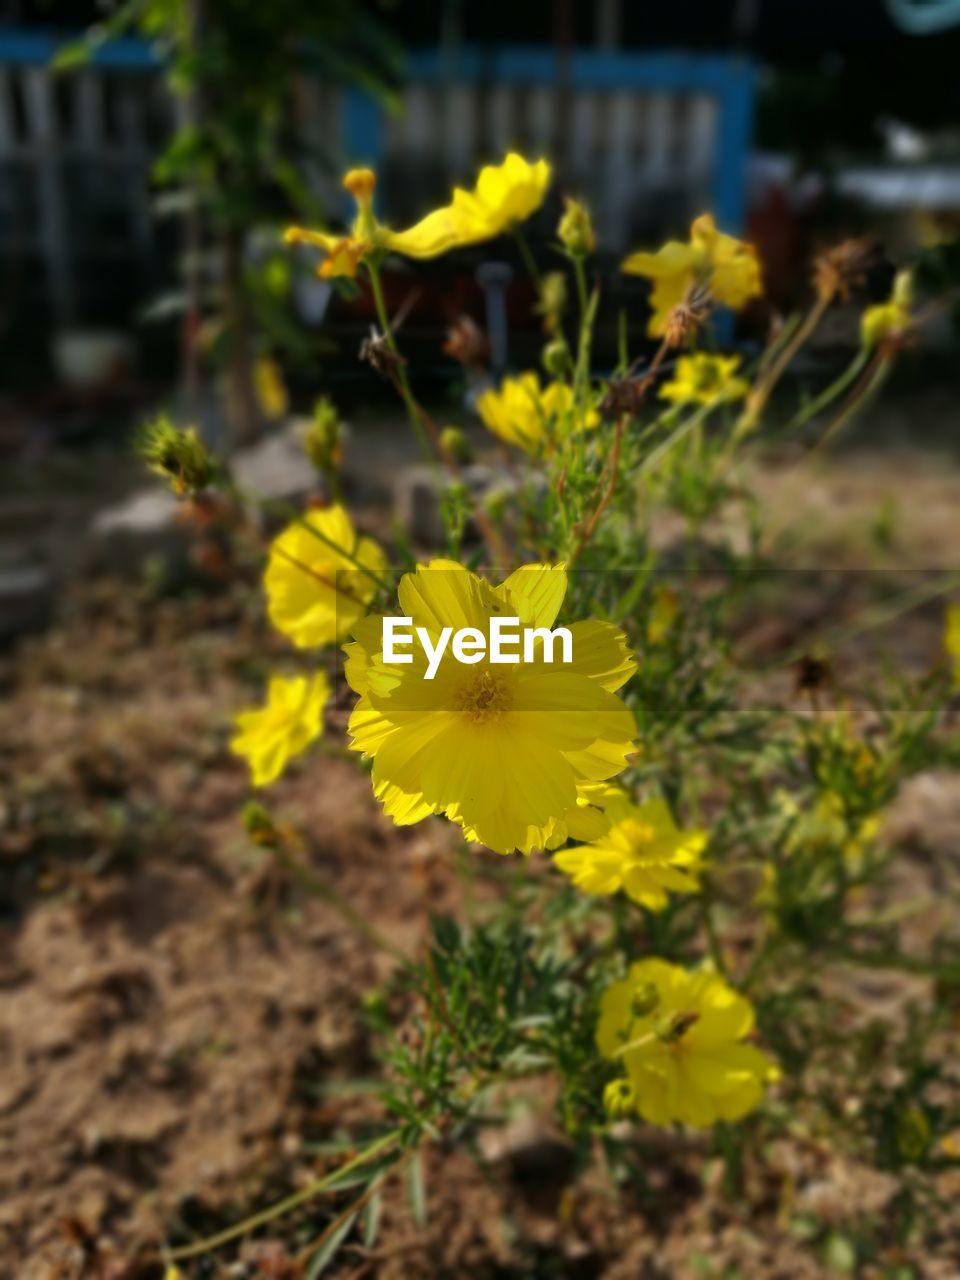 flower, yellow, fragility, petal, growth, nature, beauty in nature, plant, freshness, flower head, blooming, outdoors, day, focus on foreground, pansy, field, close-up, no people, springtime